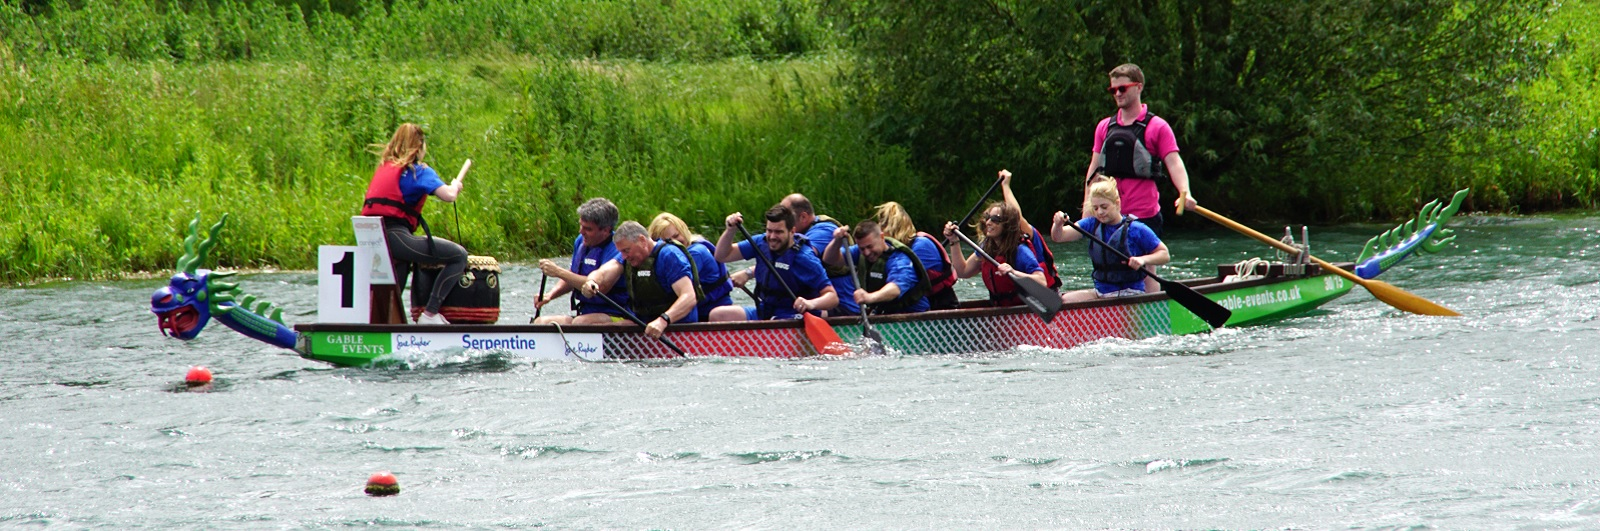 Team Hunt & Coombs Dragon Boat Racing to raise money for Sue Ryder